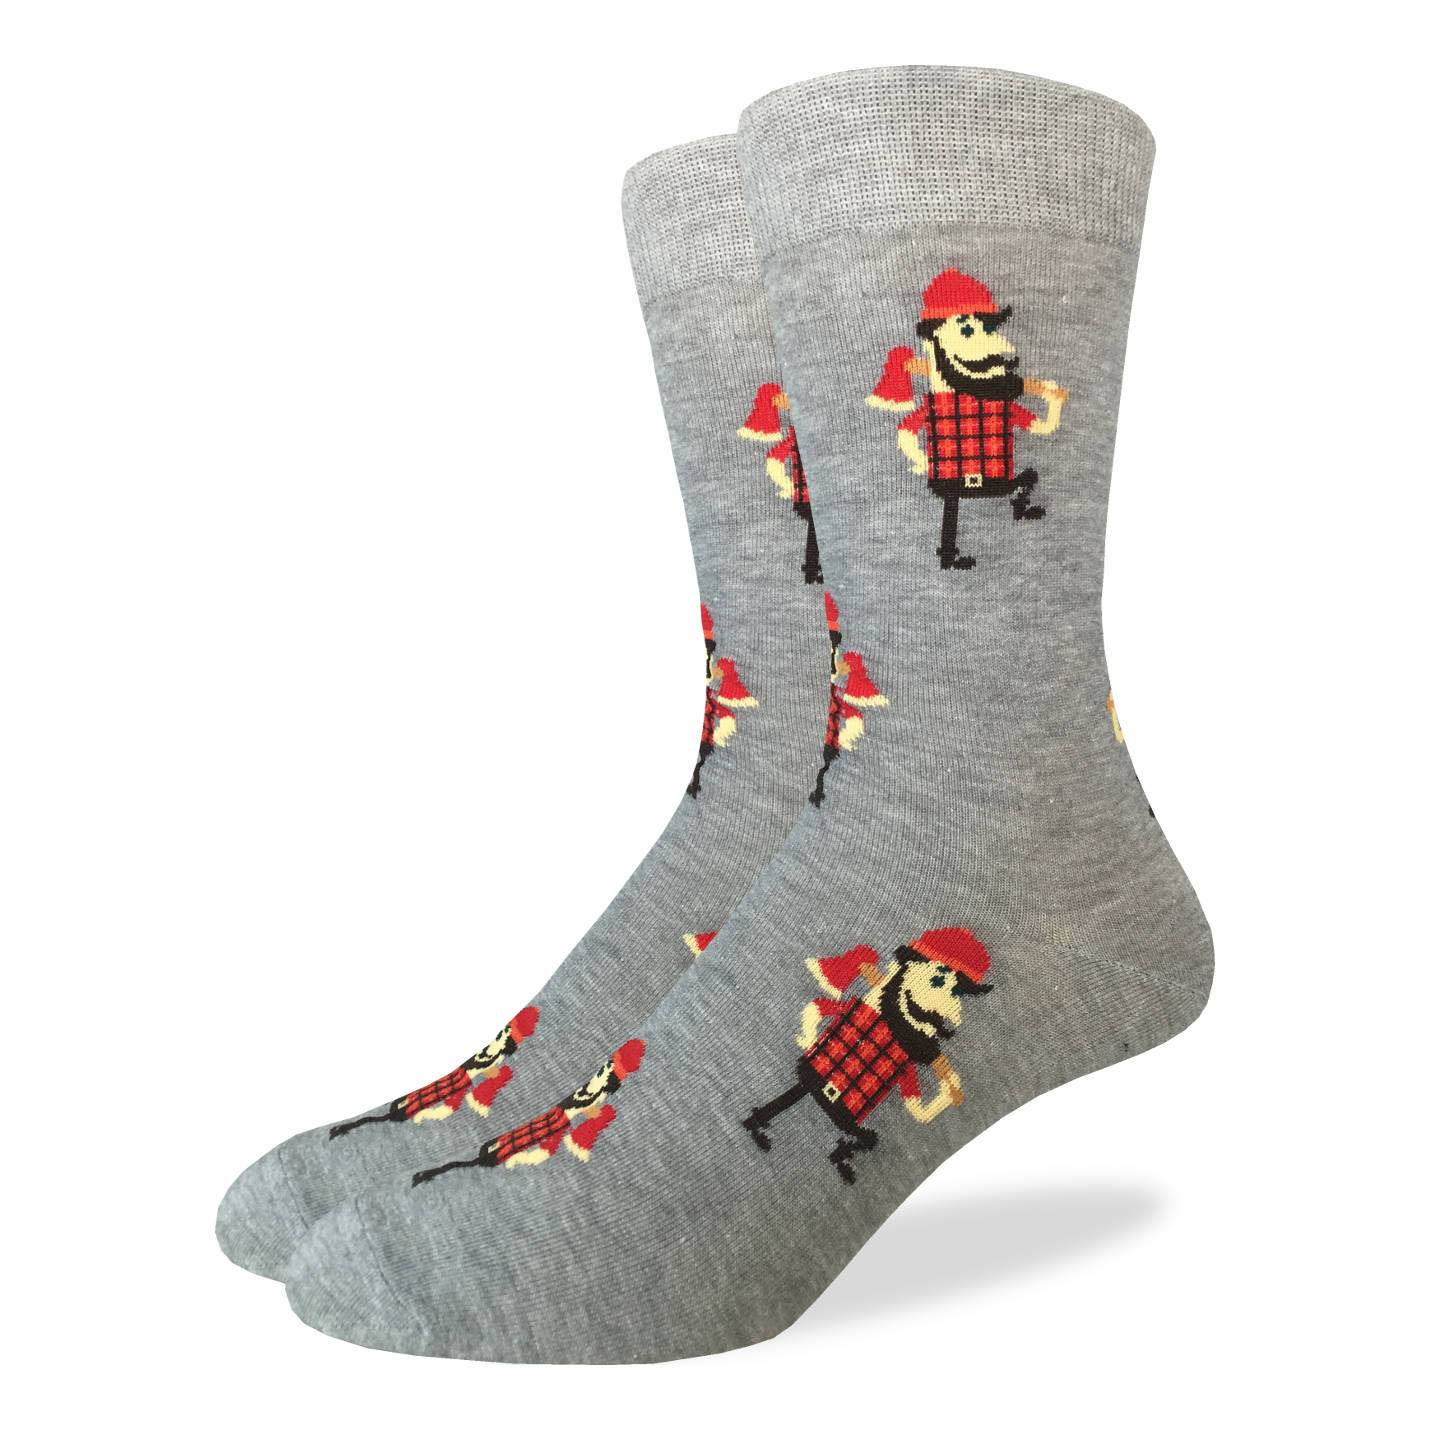 Men's King Size Lumberjack Socks - Good Luck Sock